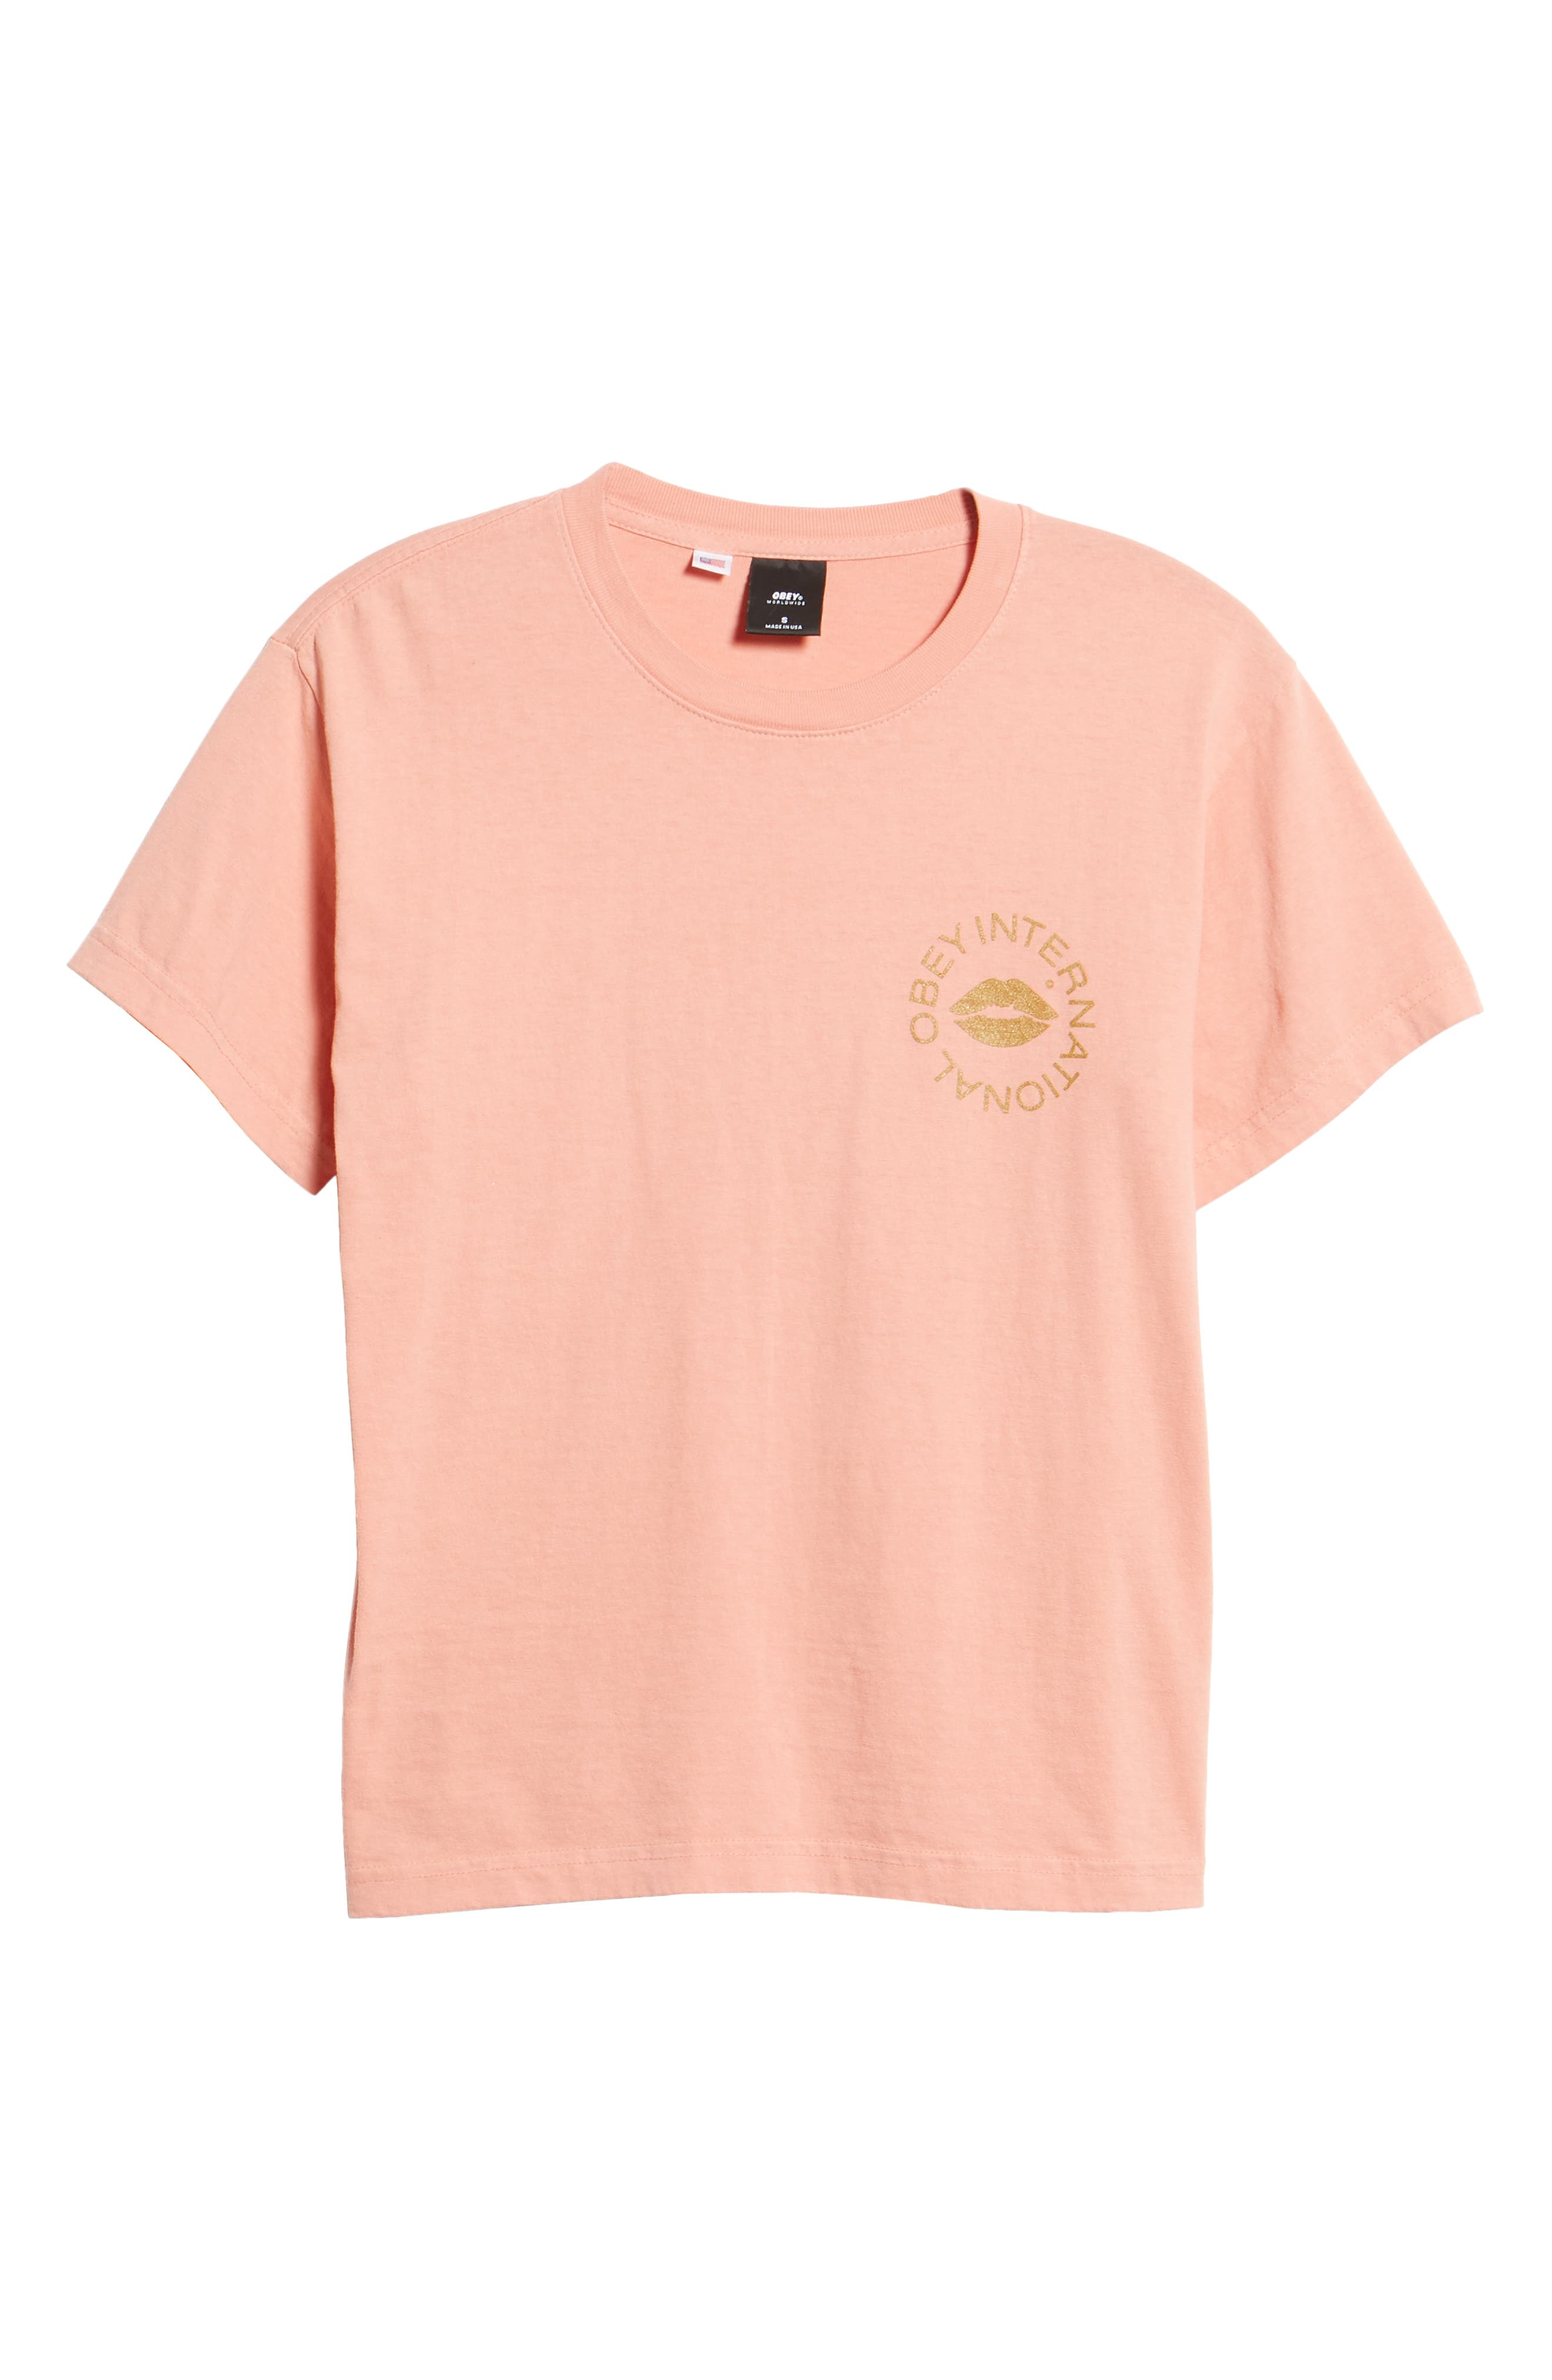 OBEY,                             Kiss of Obey Boxy Tee,                             Alternate thumbnail 6, color,                             950